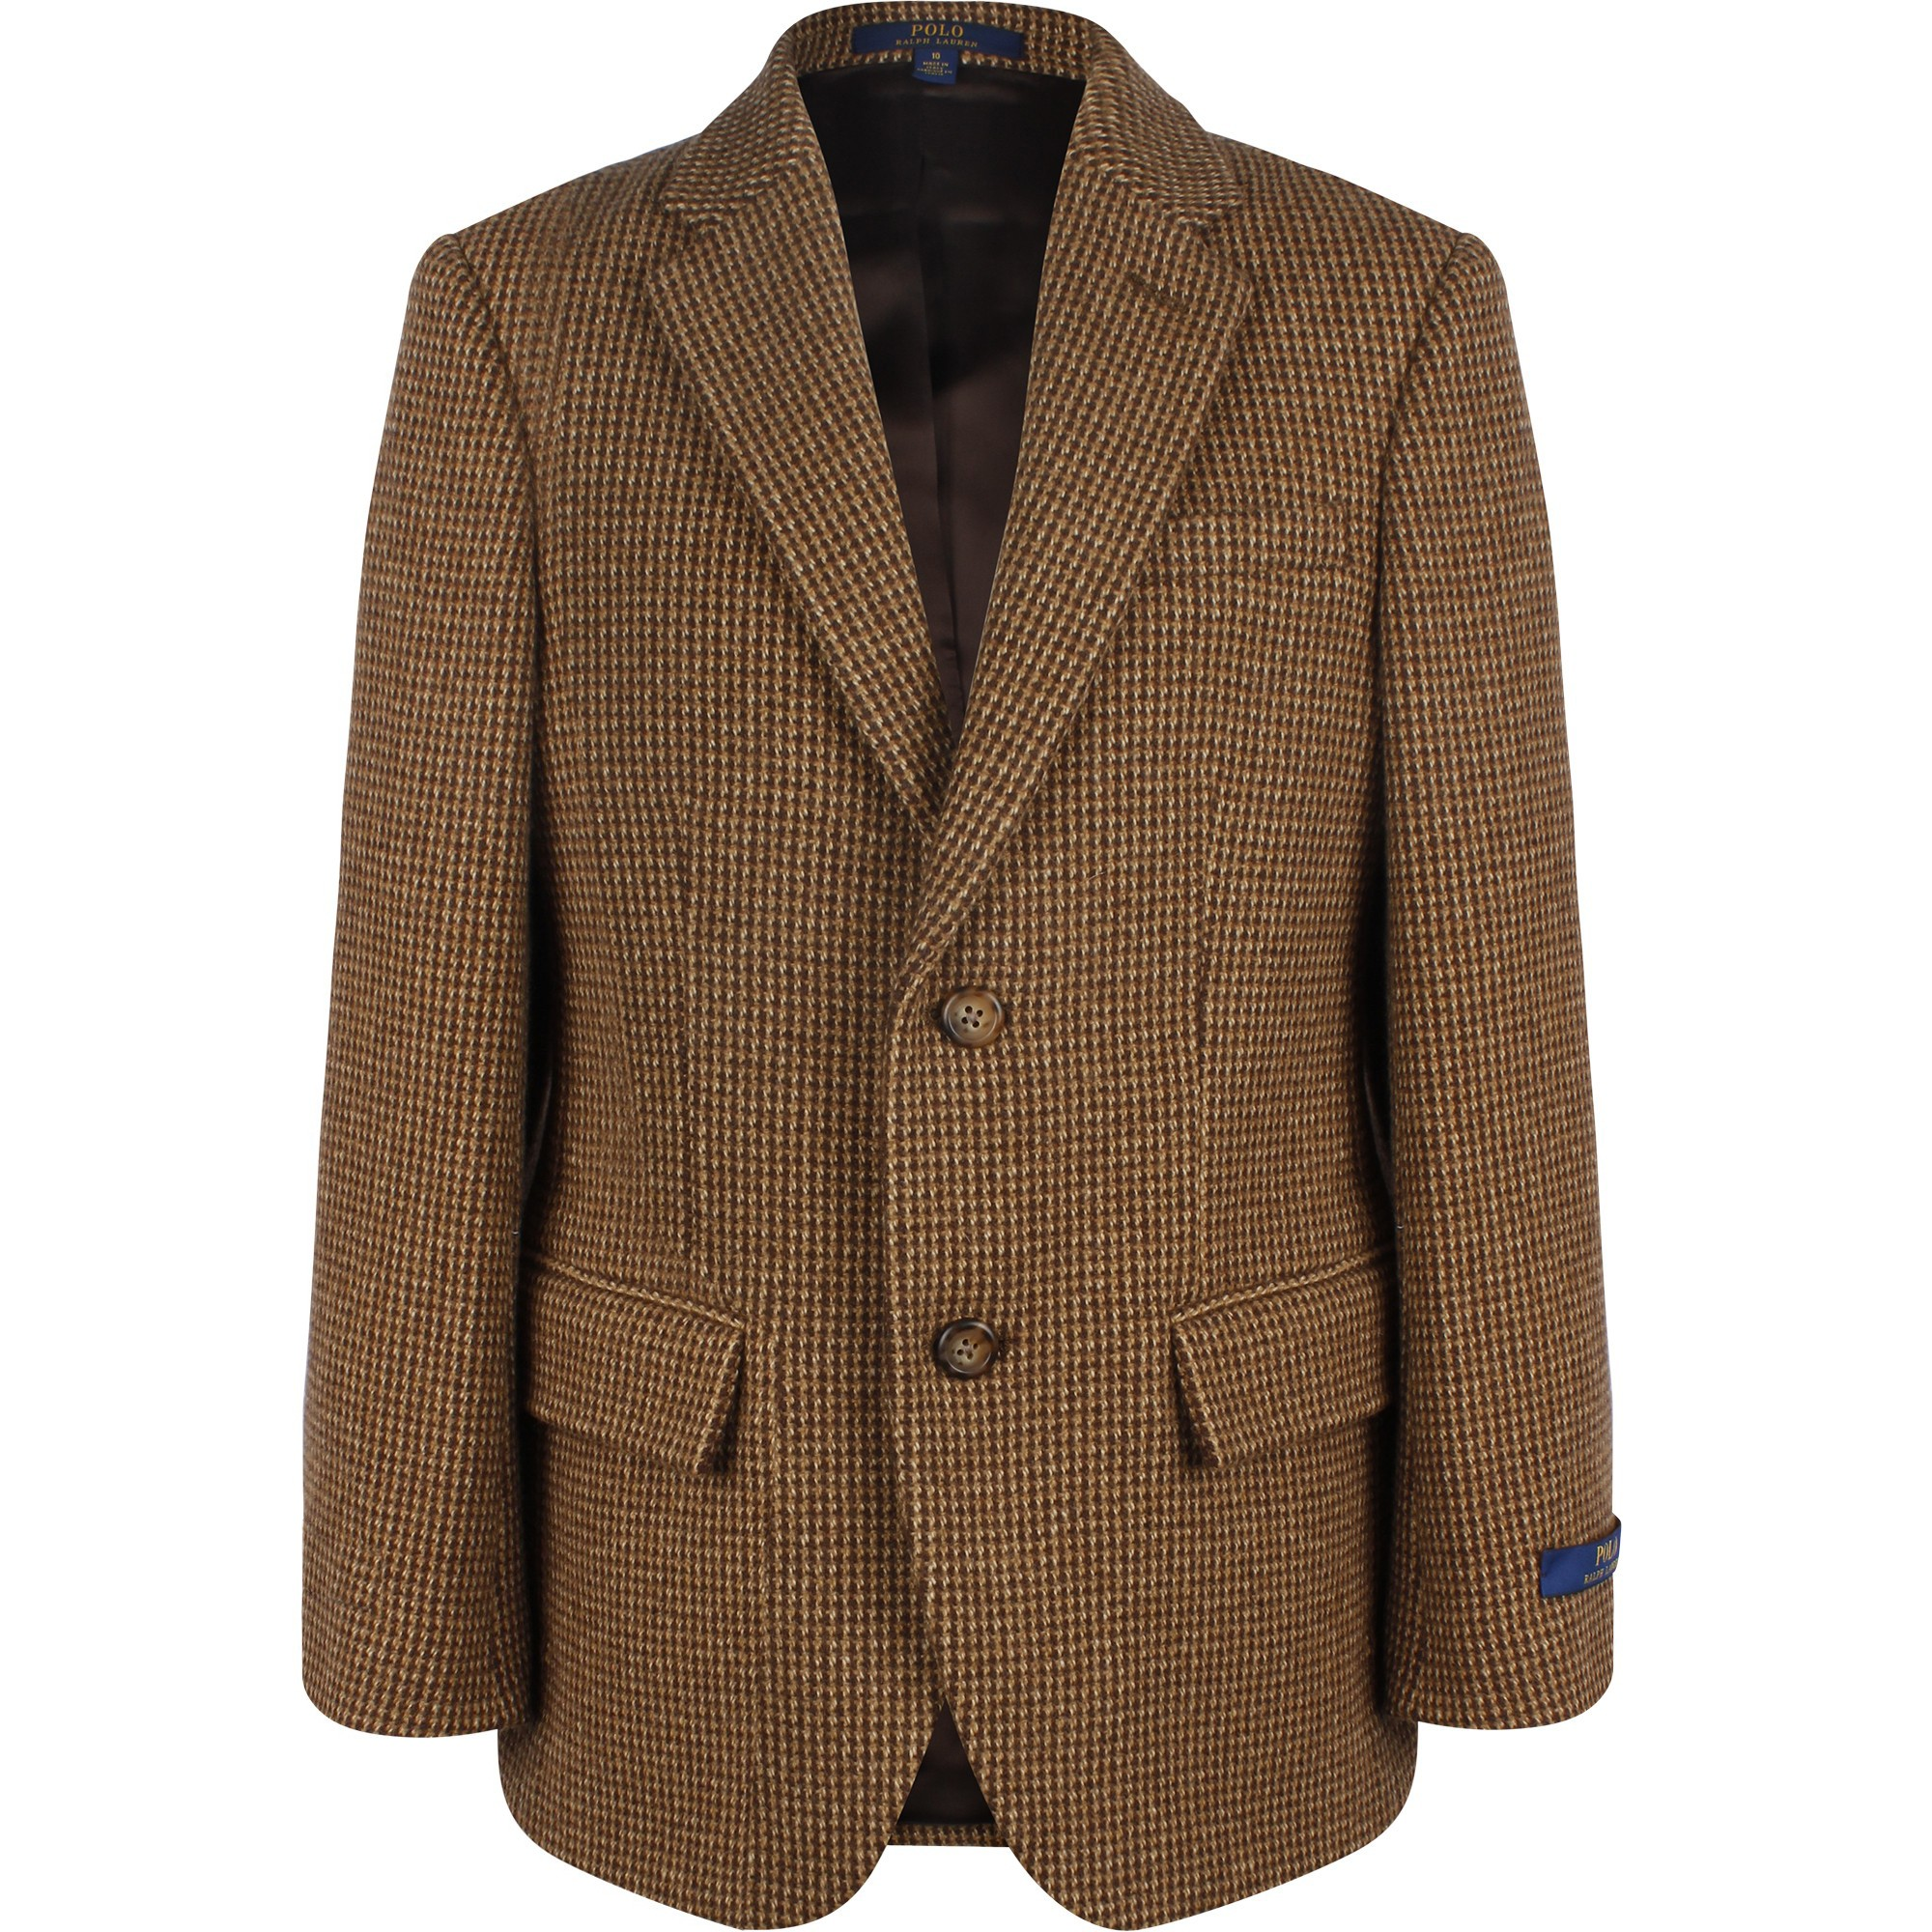 Exist Overview Annual  Polo Ralph Lauren Tweed Blazer in Brown - BAMBINIFASHION.COM